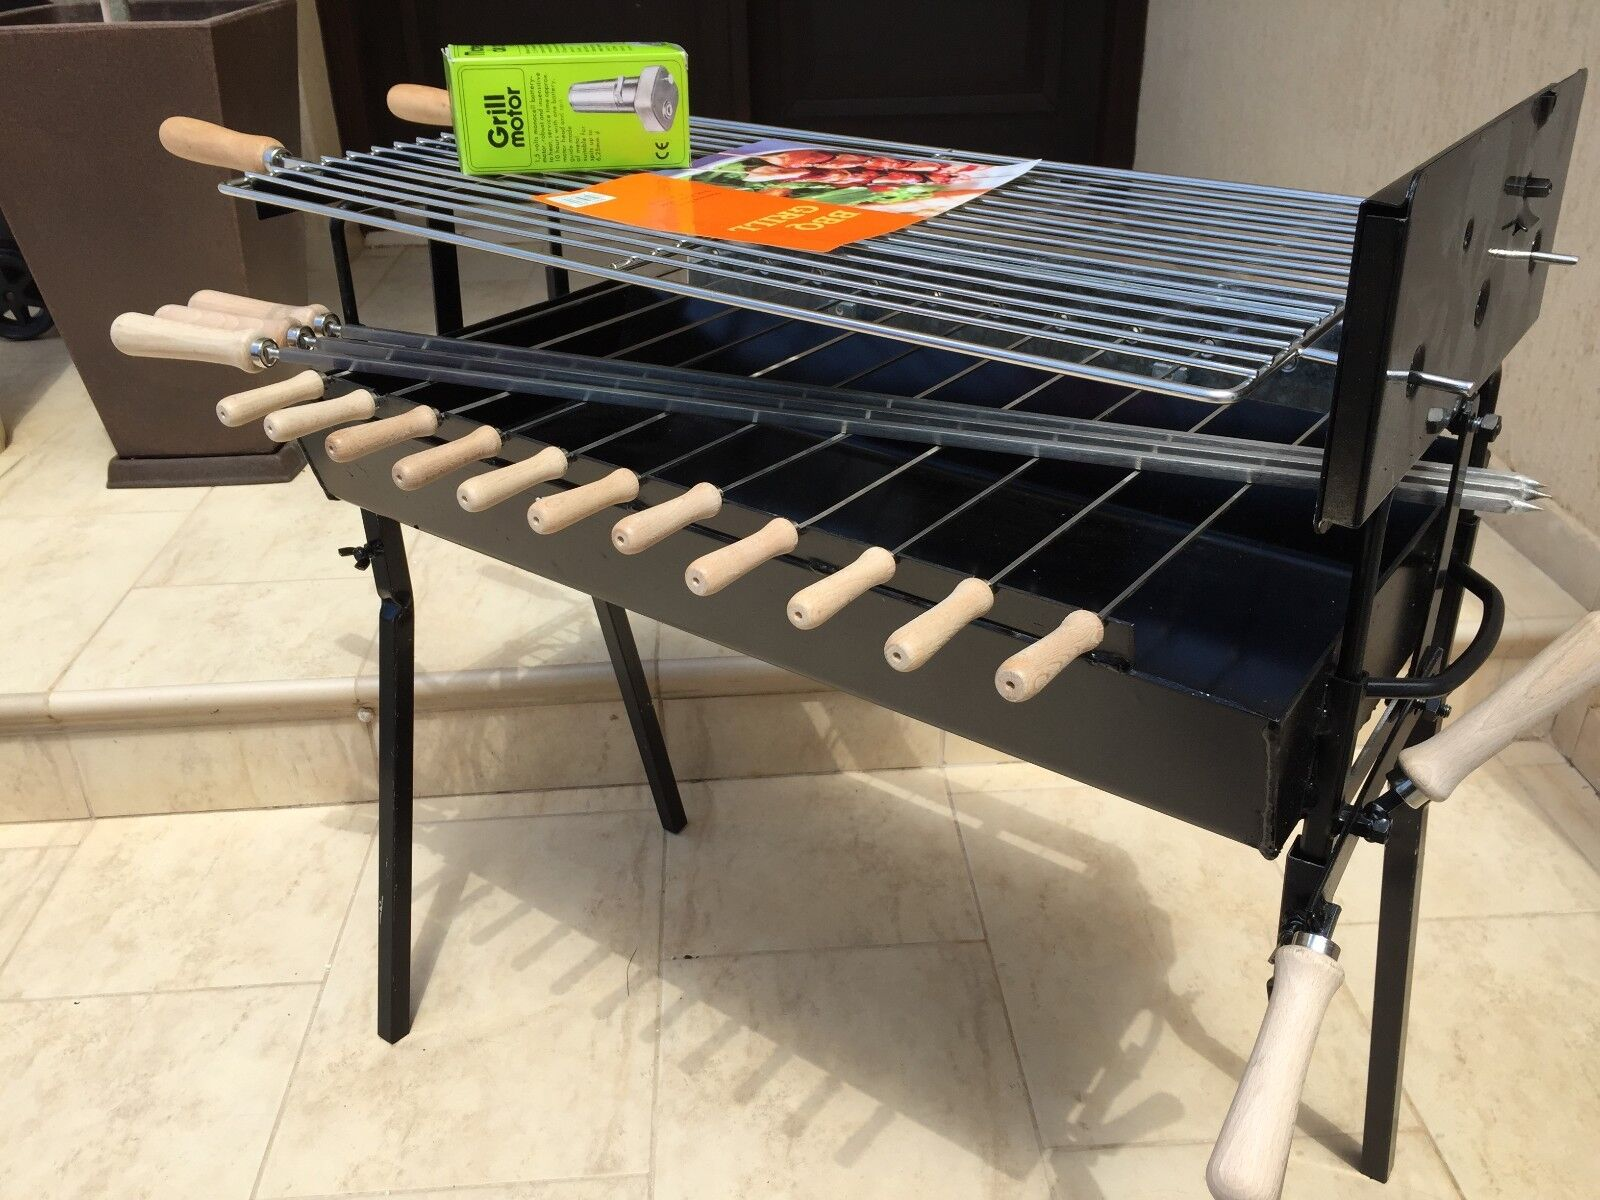 Find great deals on eBay for Used BBQ Smoker in Commercial Kitchen Outdoor Barbecue and Smokers Shop with confidence